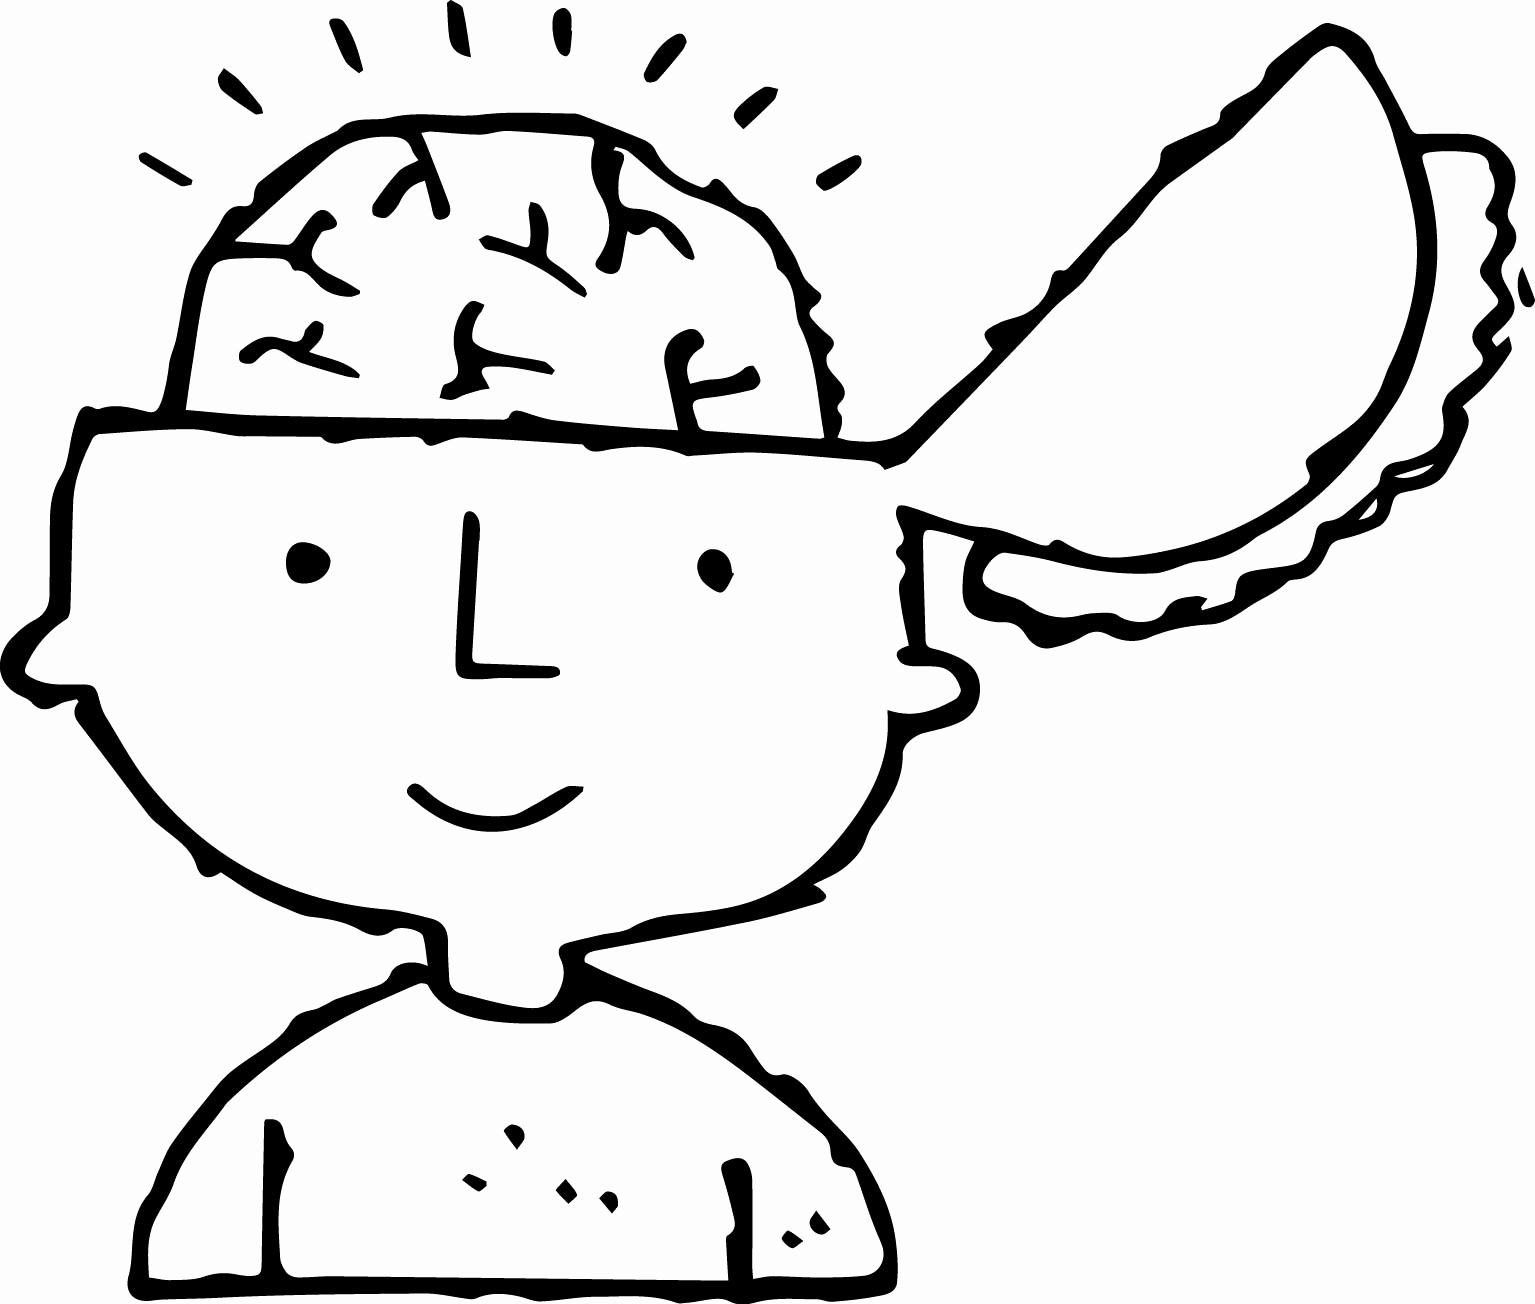 Brain Coloring Page At Getcolorings